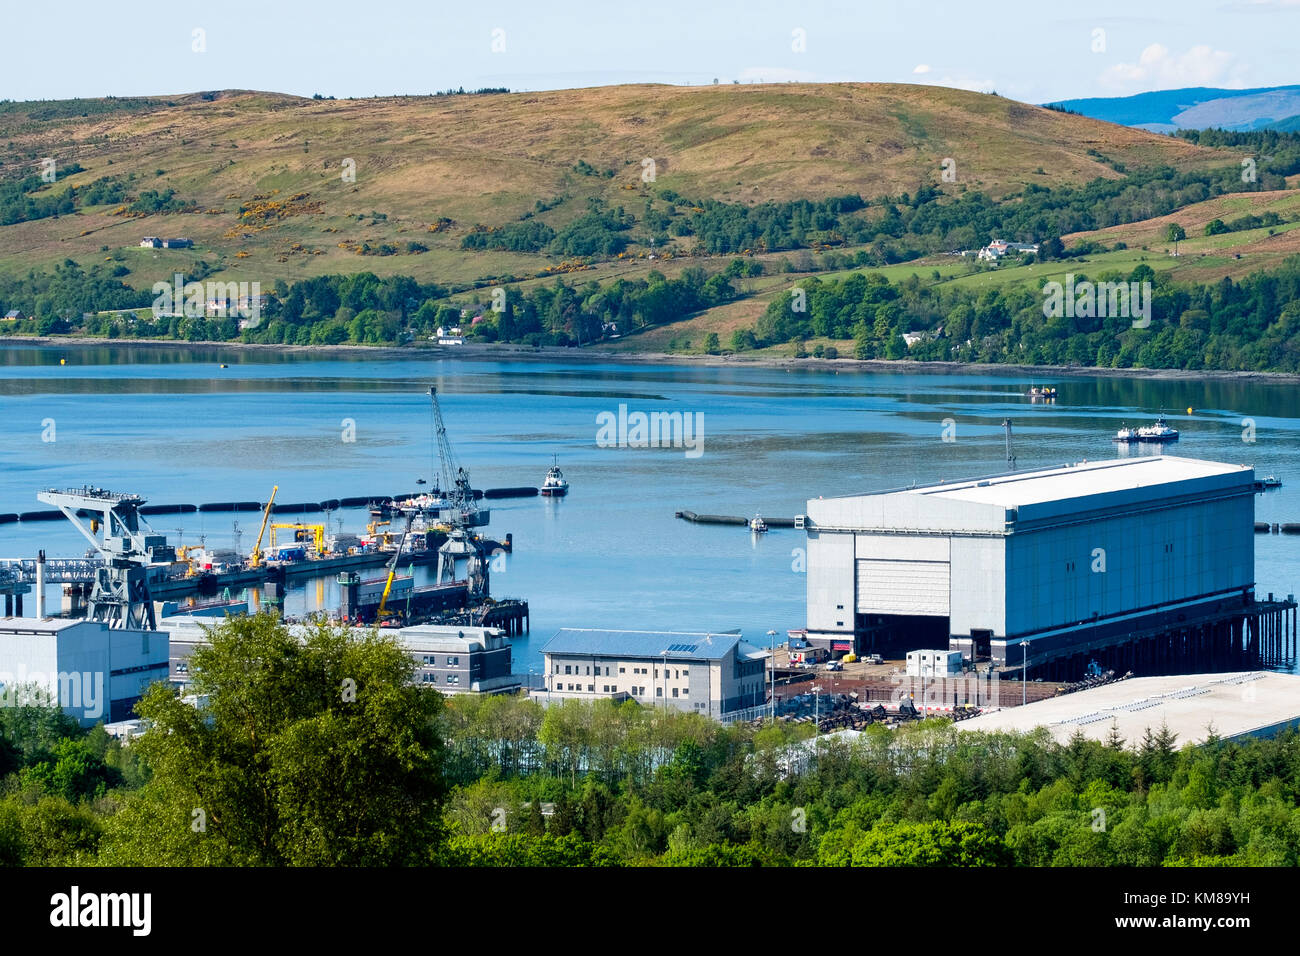 View of Faslane Nuclear Submarine Base on the Gare Loch in Argyll and Bute, Scotland, United Kingdom - Stock Image